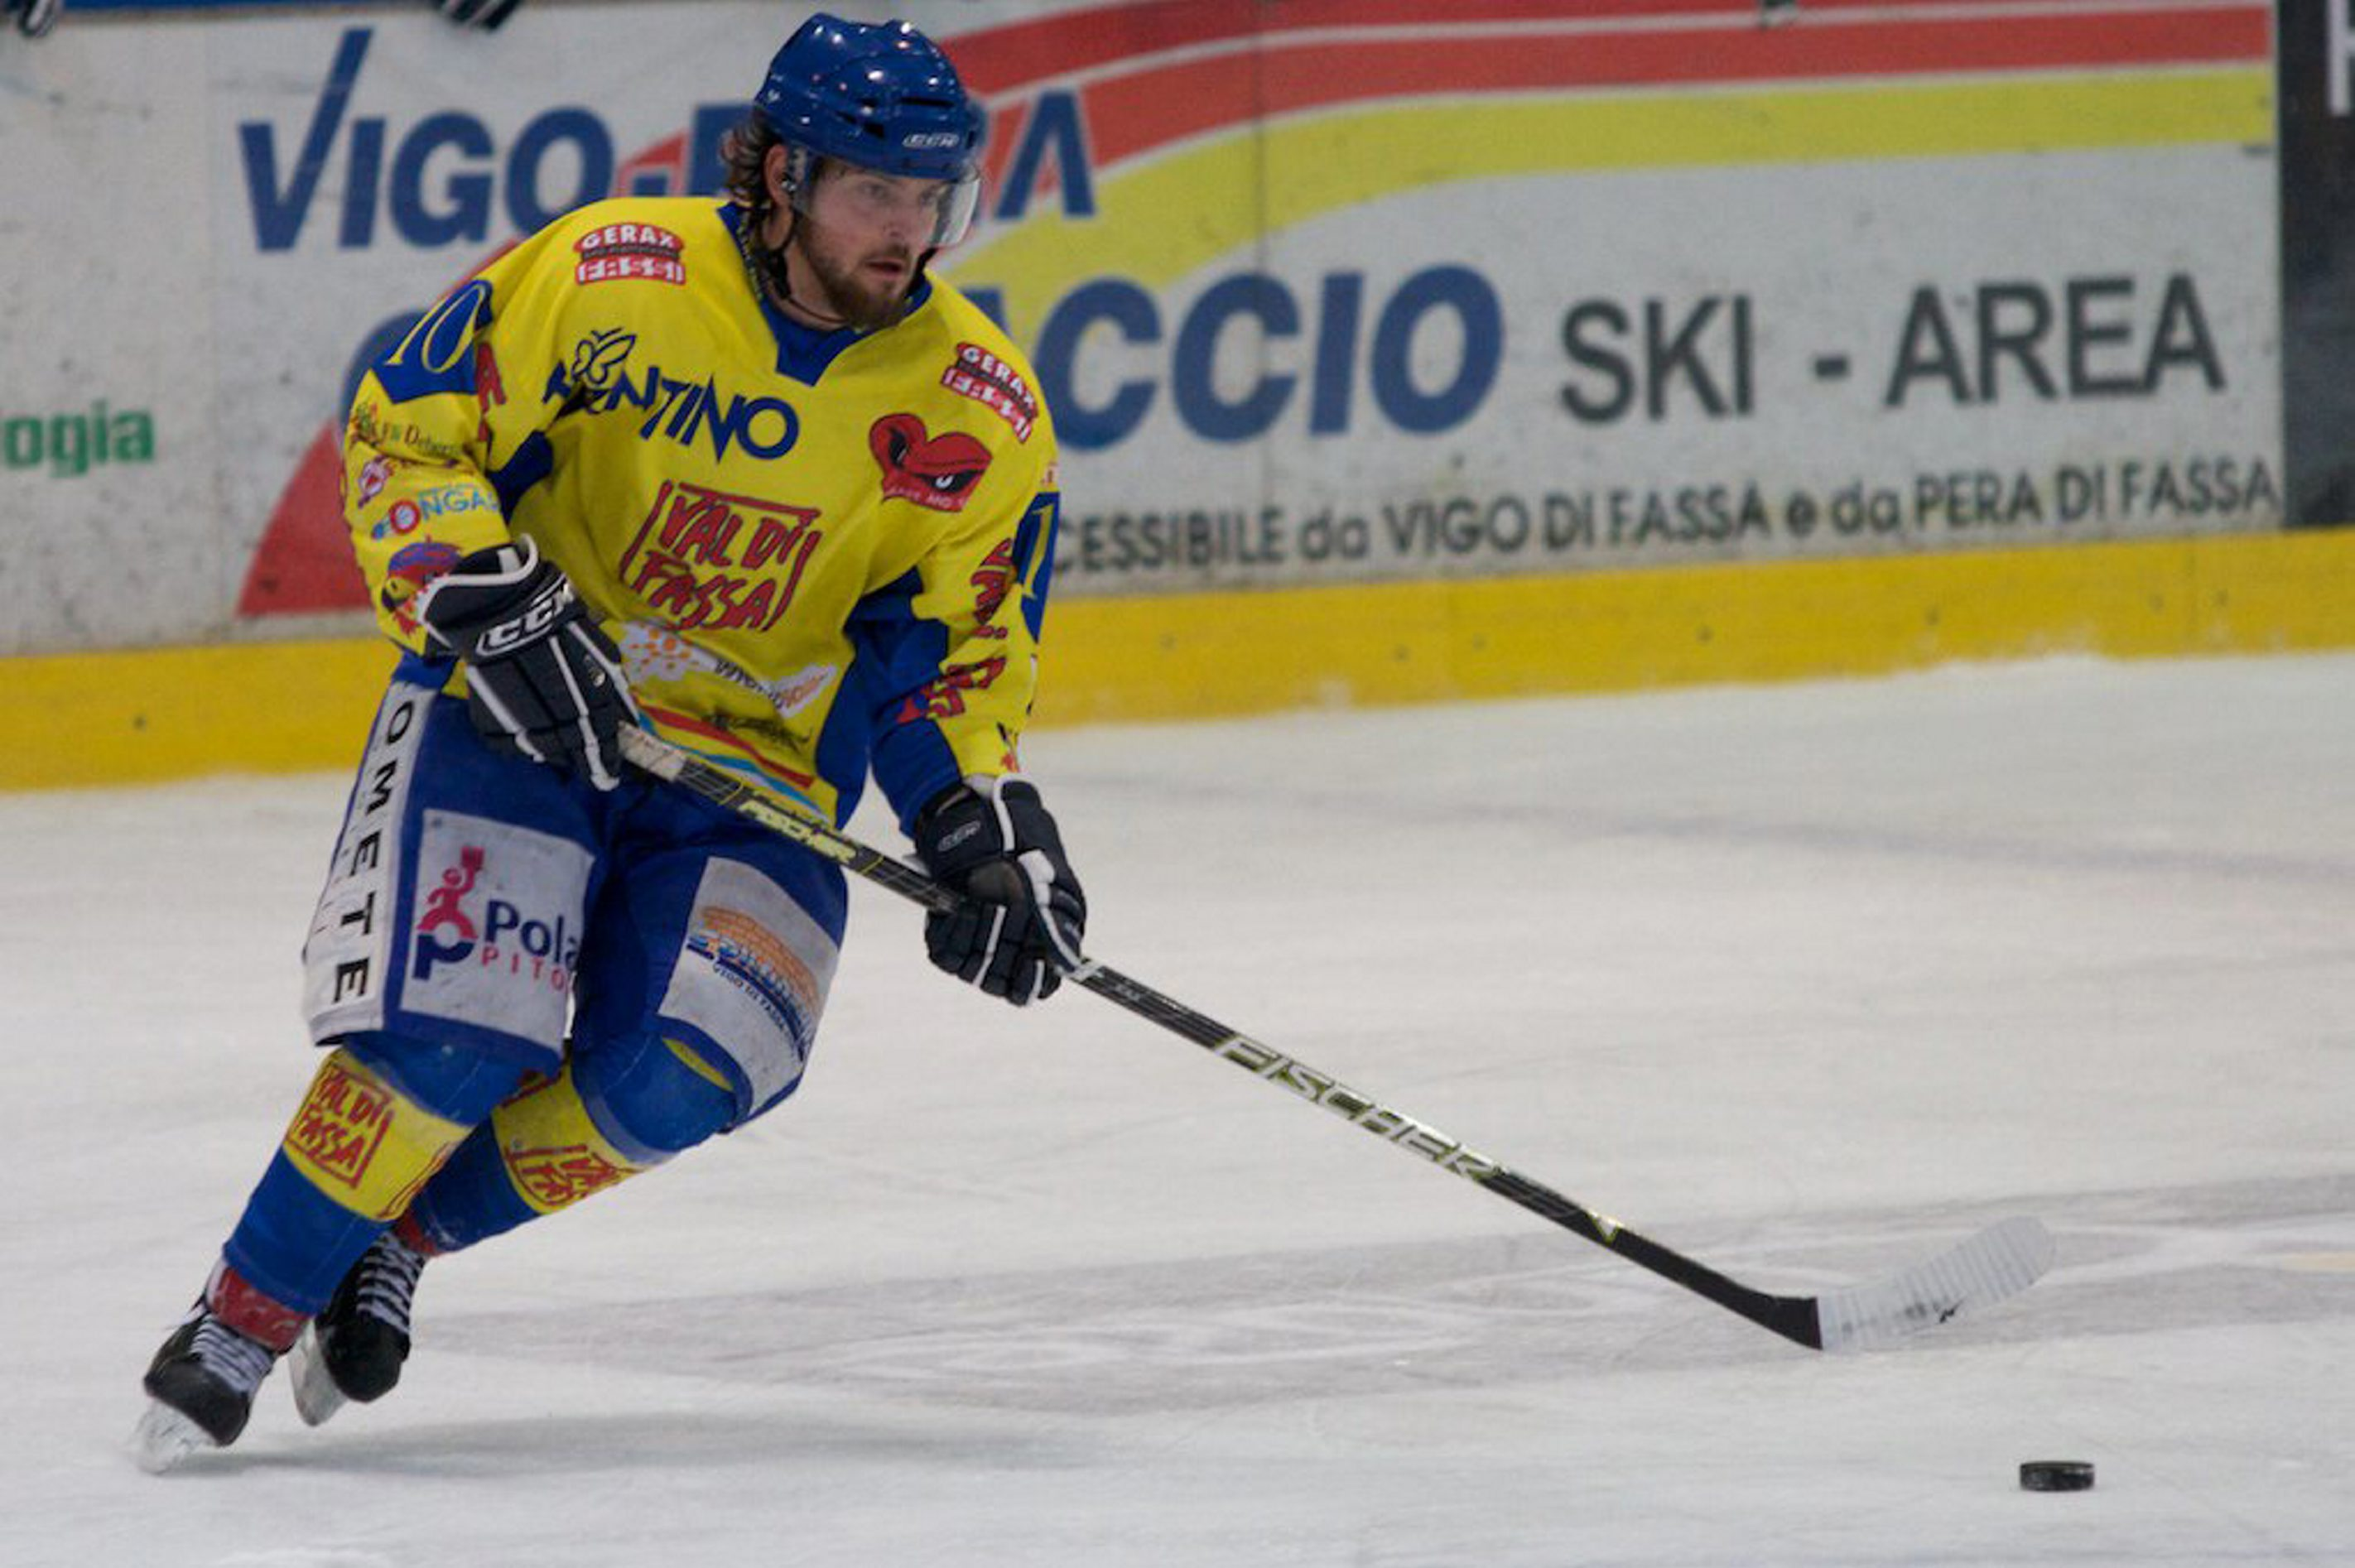 Former Niagara player Dan Sullivan has found a fit in pro hockey skating overseas and played for a league champion in Italy this season.